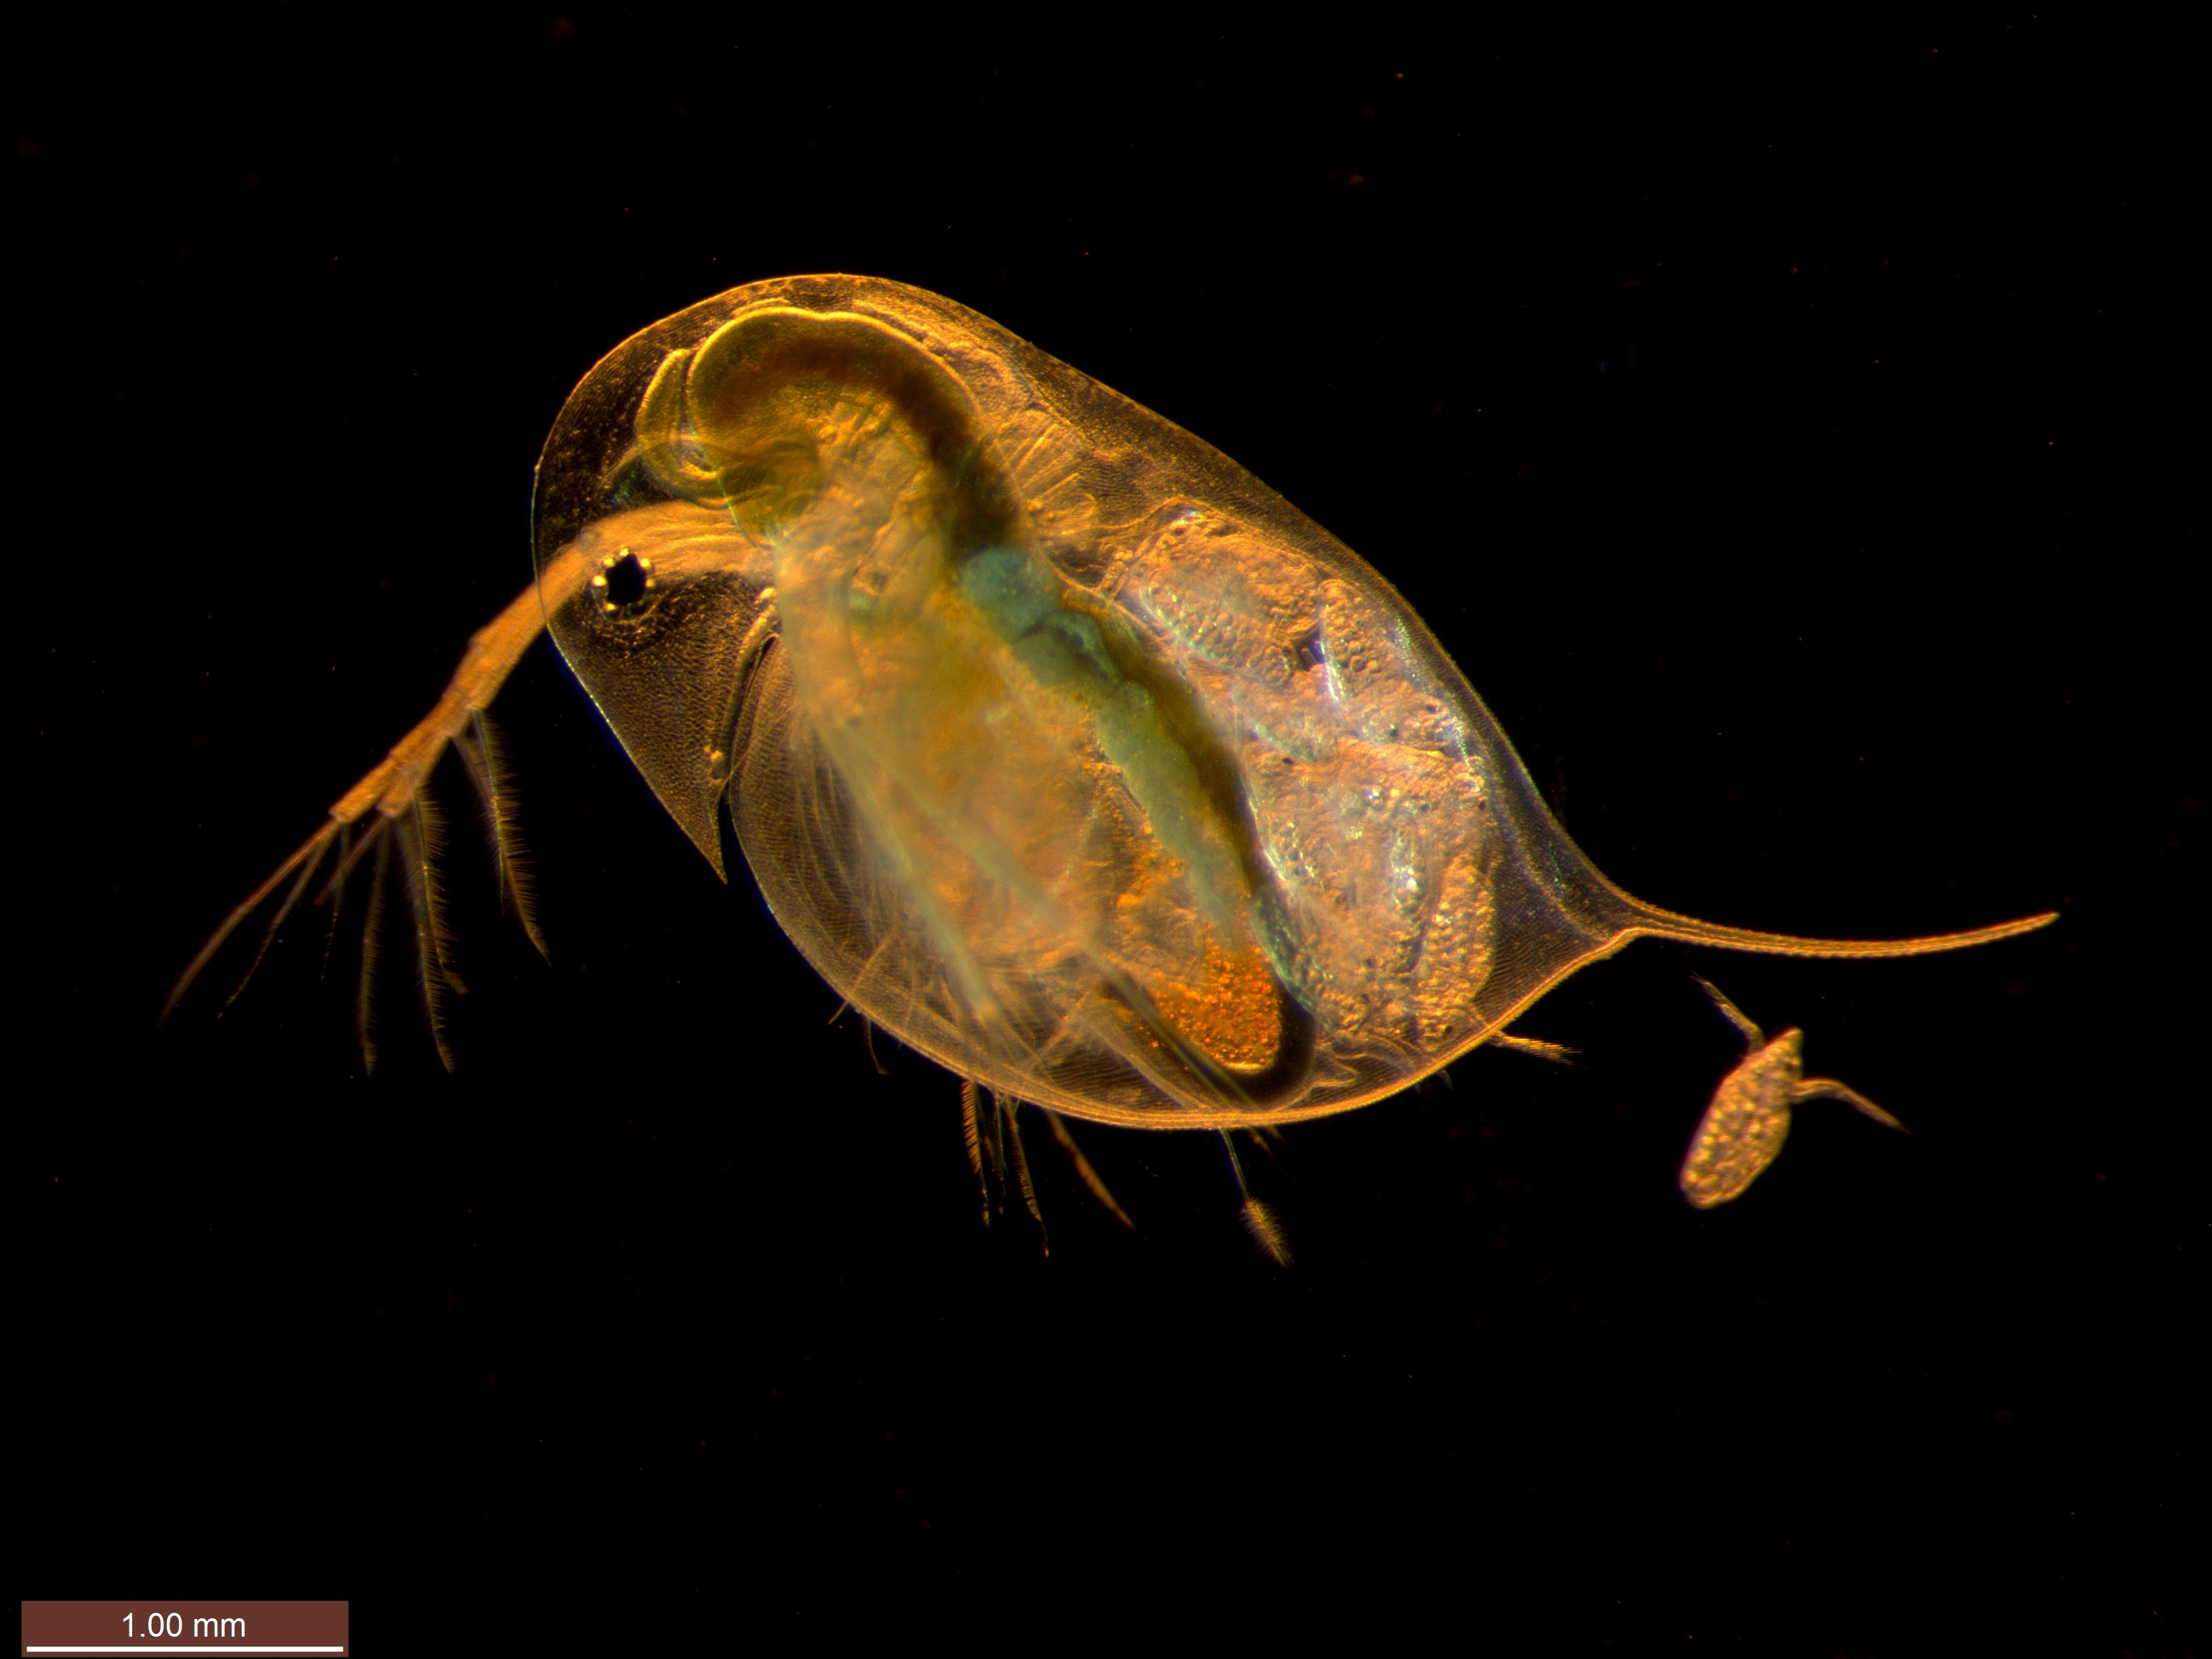 daphnia epinephrine After the epinephrine was diluted from the slide the average heart rate returned to an average of 78 beats in 15 seconds, with a decrease of 7% from the heart rate with epinephrine discussion after putting the daphnia in warm water the average heart rate increased by 12 5.